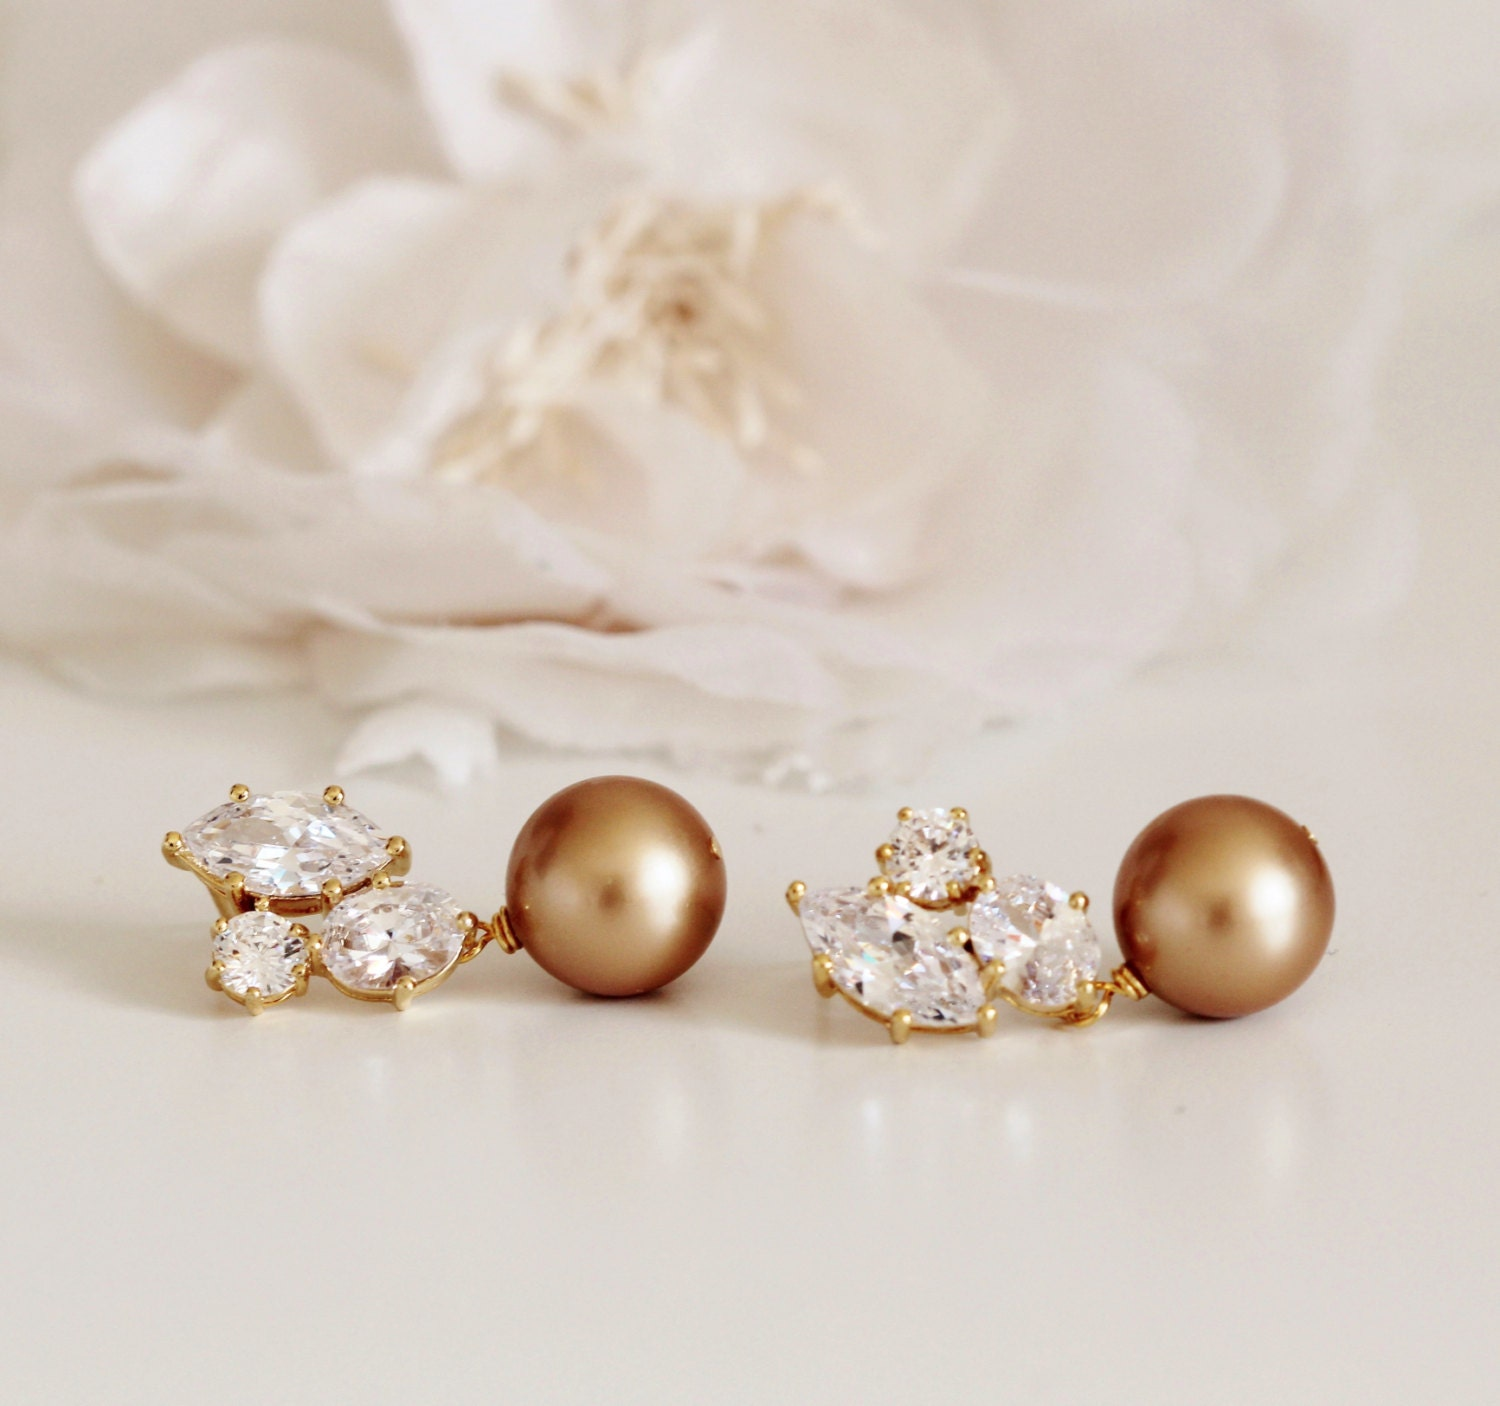 Pearl Wedding Jewelry Mother Of The Bride Gift Swarovski Bridal Earrings  Vintage Gold Pearl Earrings Mother Of The Groom Gift Mother Jewelry